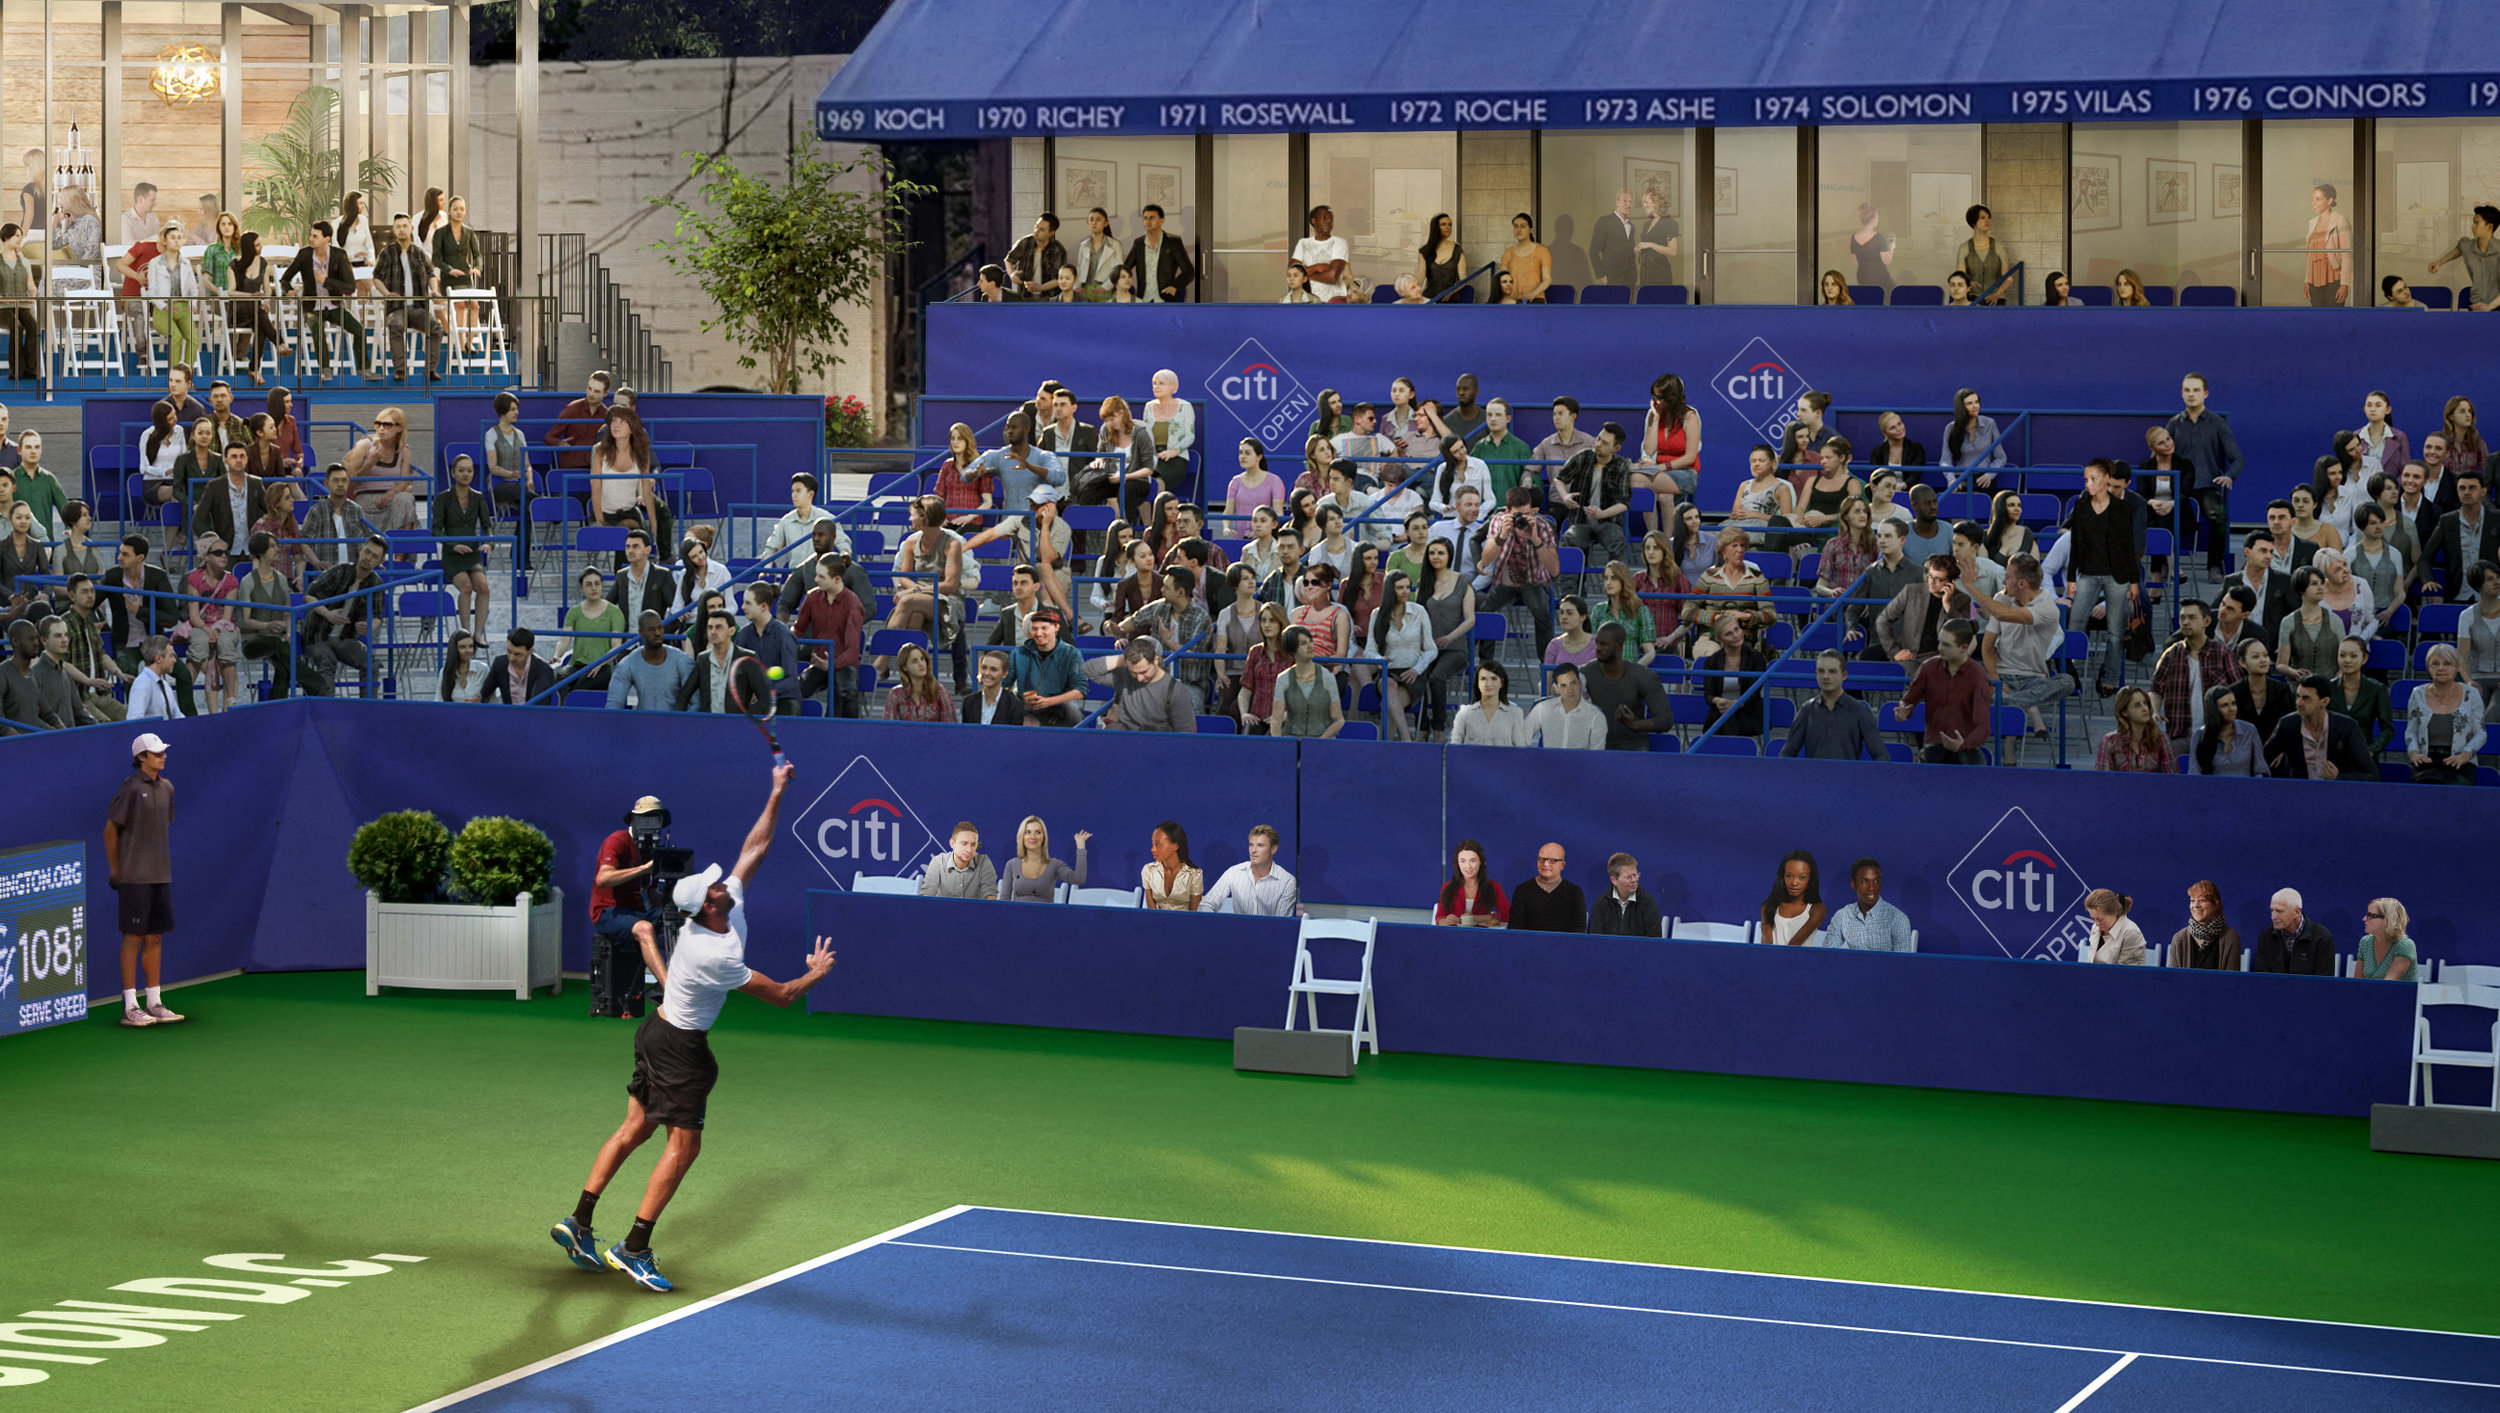 CitiOpen-VIP-FINAL_CROP2_HiRes_01.jpg